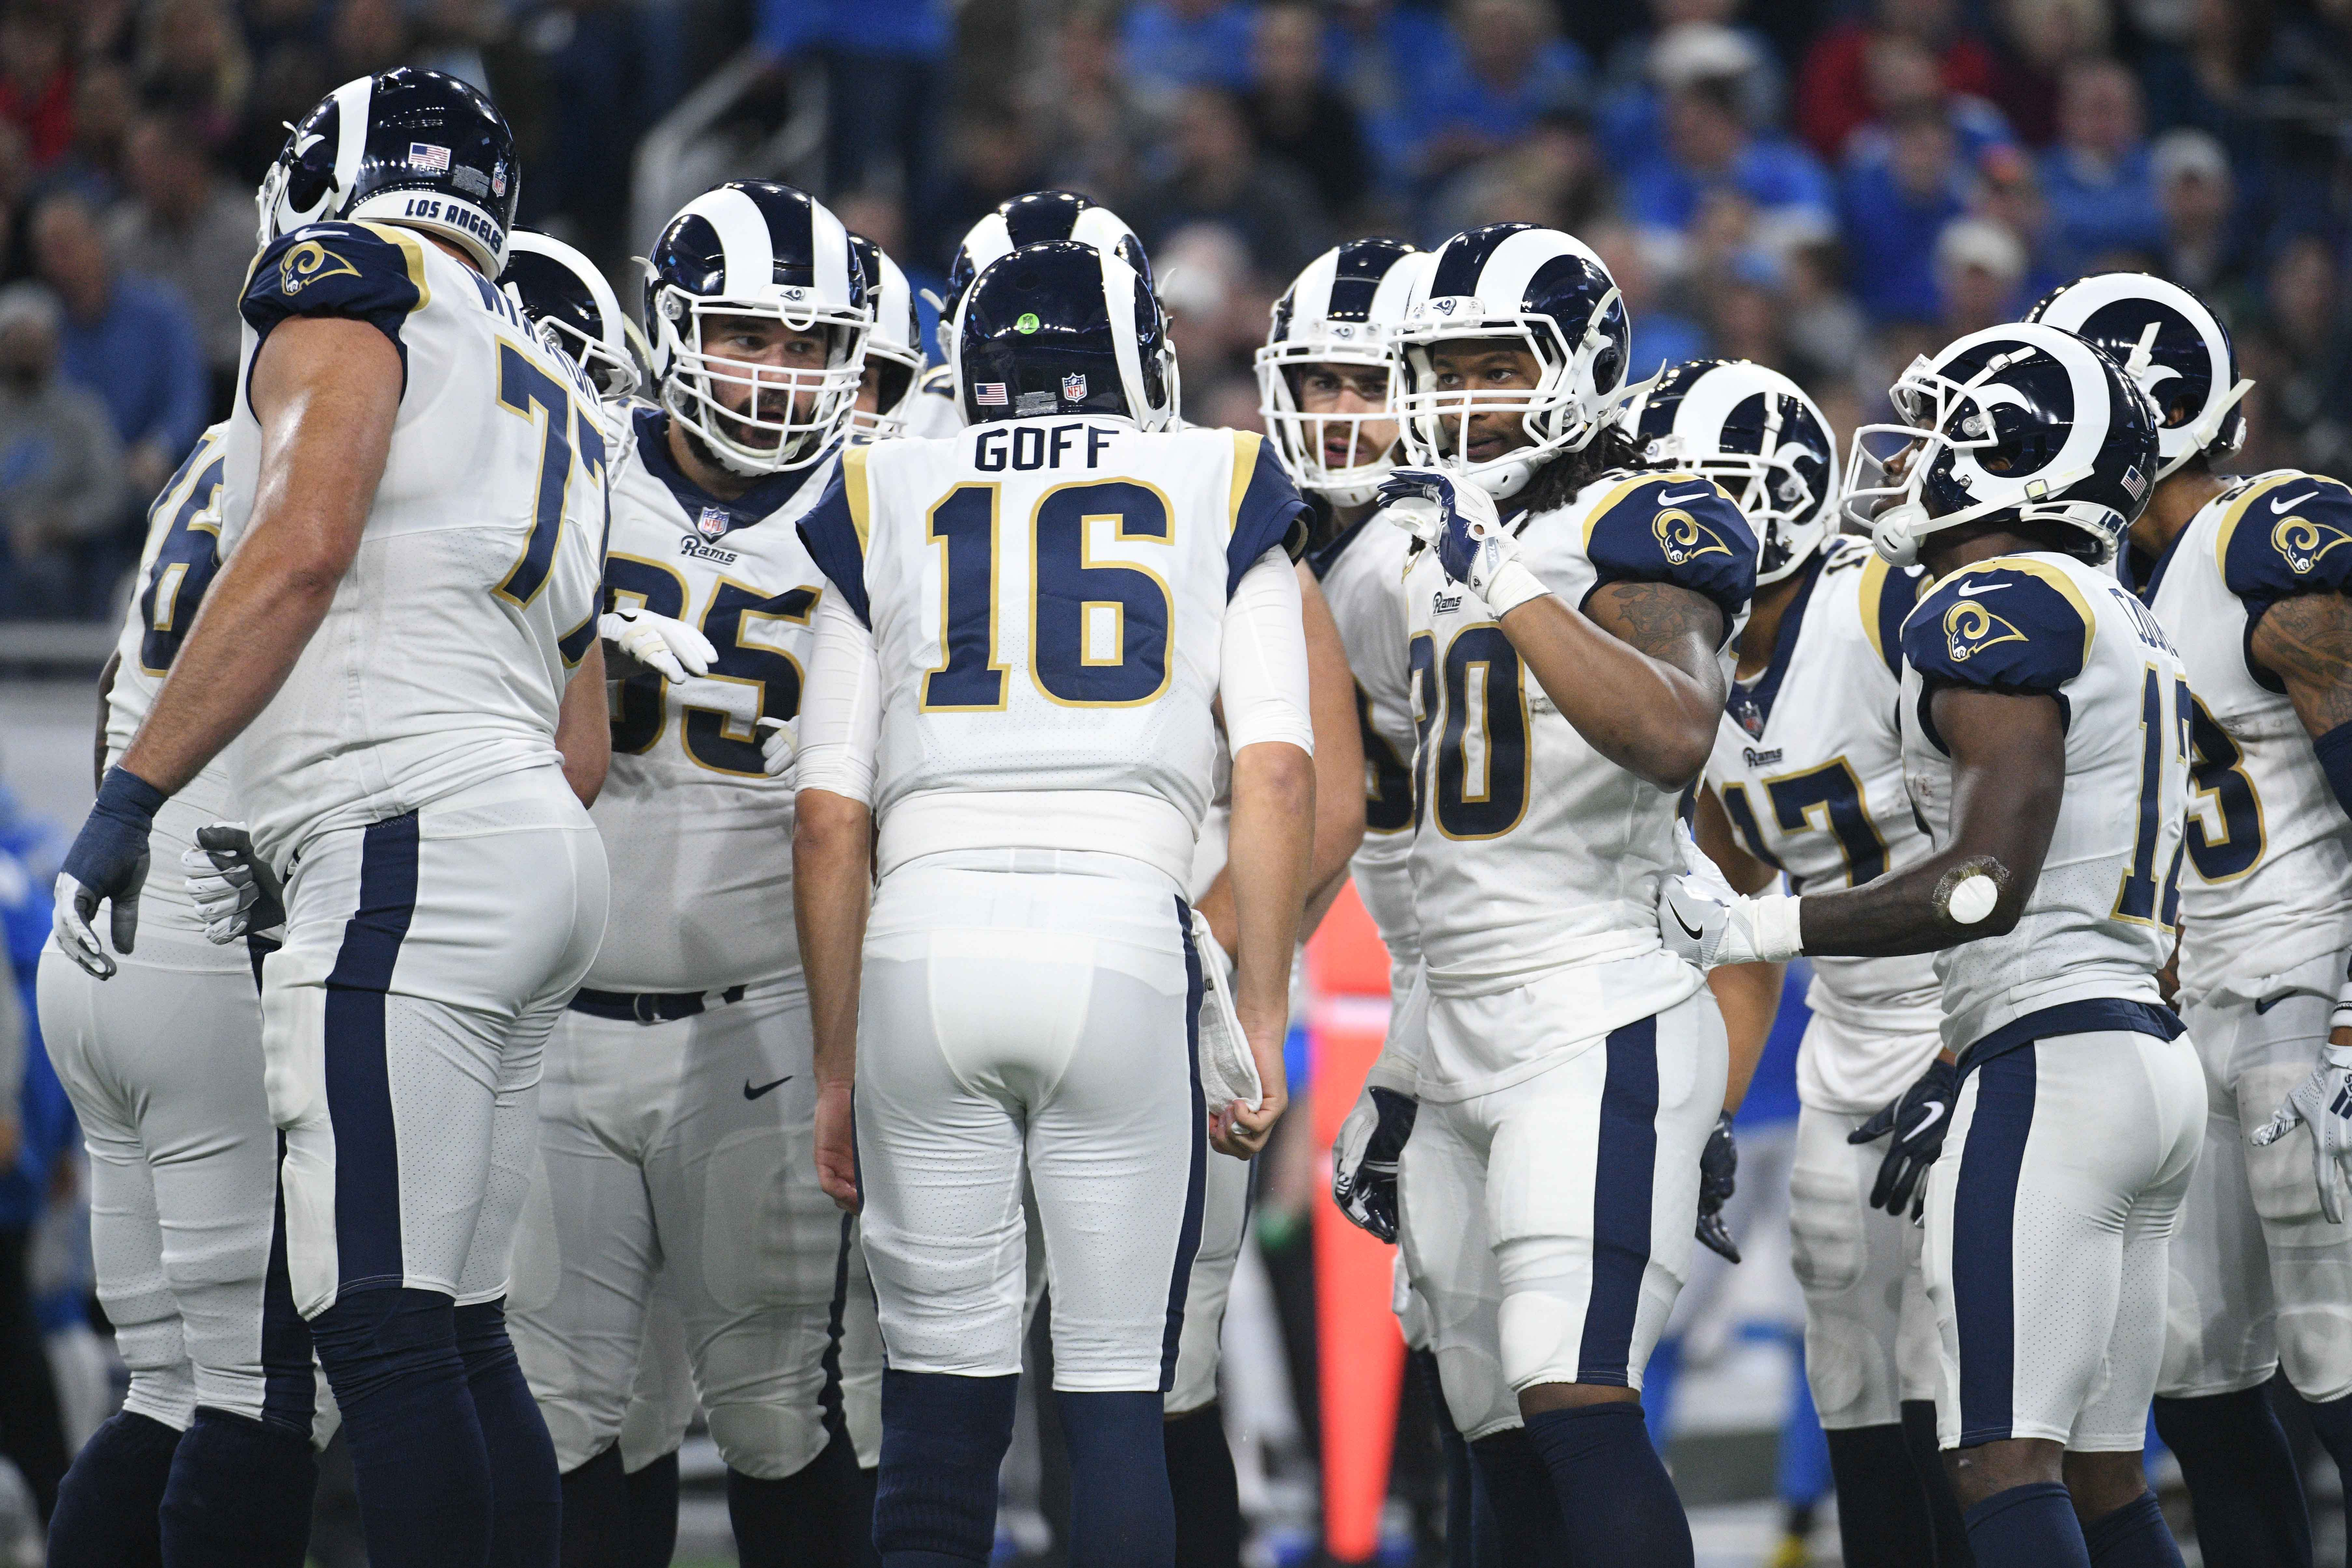 The Los Angeles Rams huddle against the Detroit Lions in Week 13, Dec. 2, 2018.